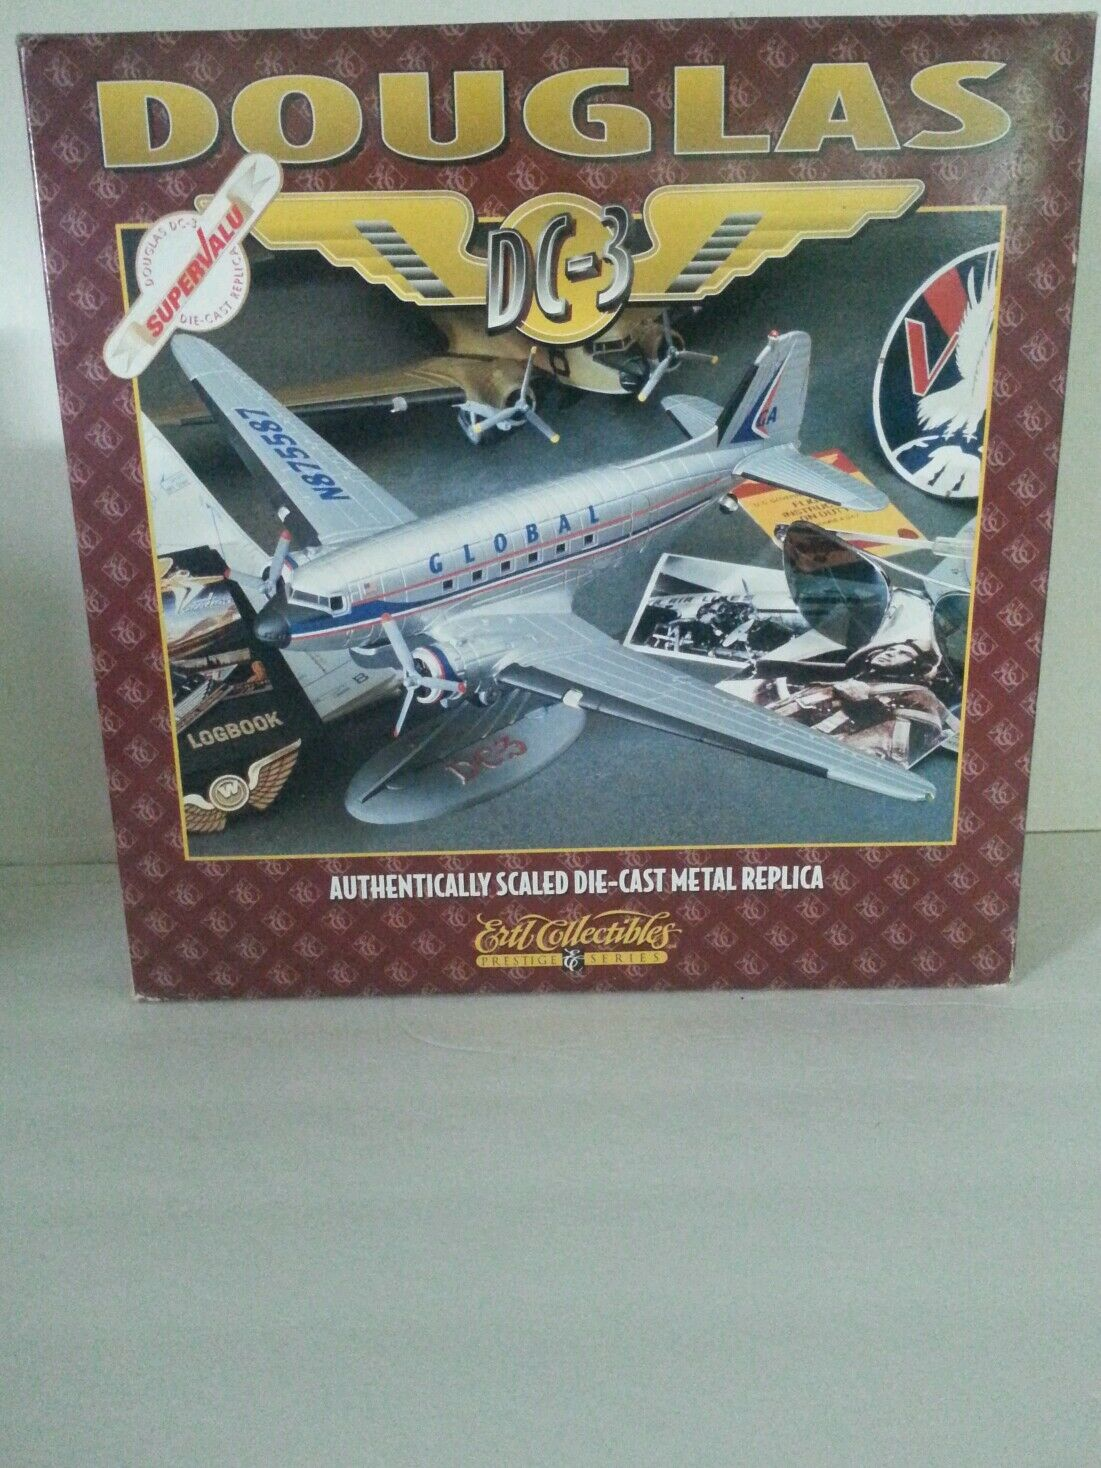 Douglas DC-3 supervalue Die-cast Ertl Collectibles en en en la caja 09298c